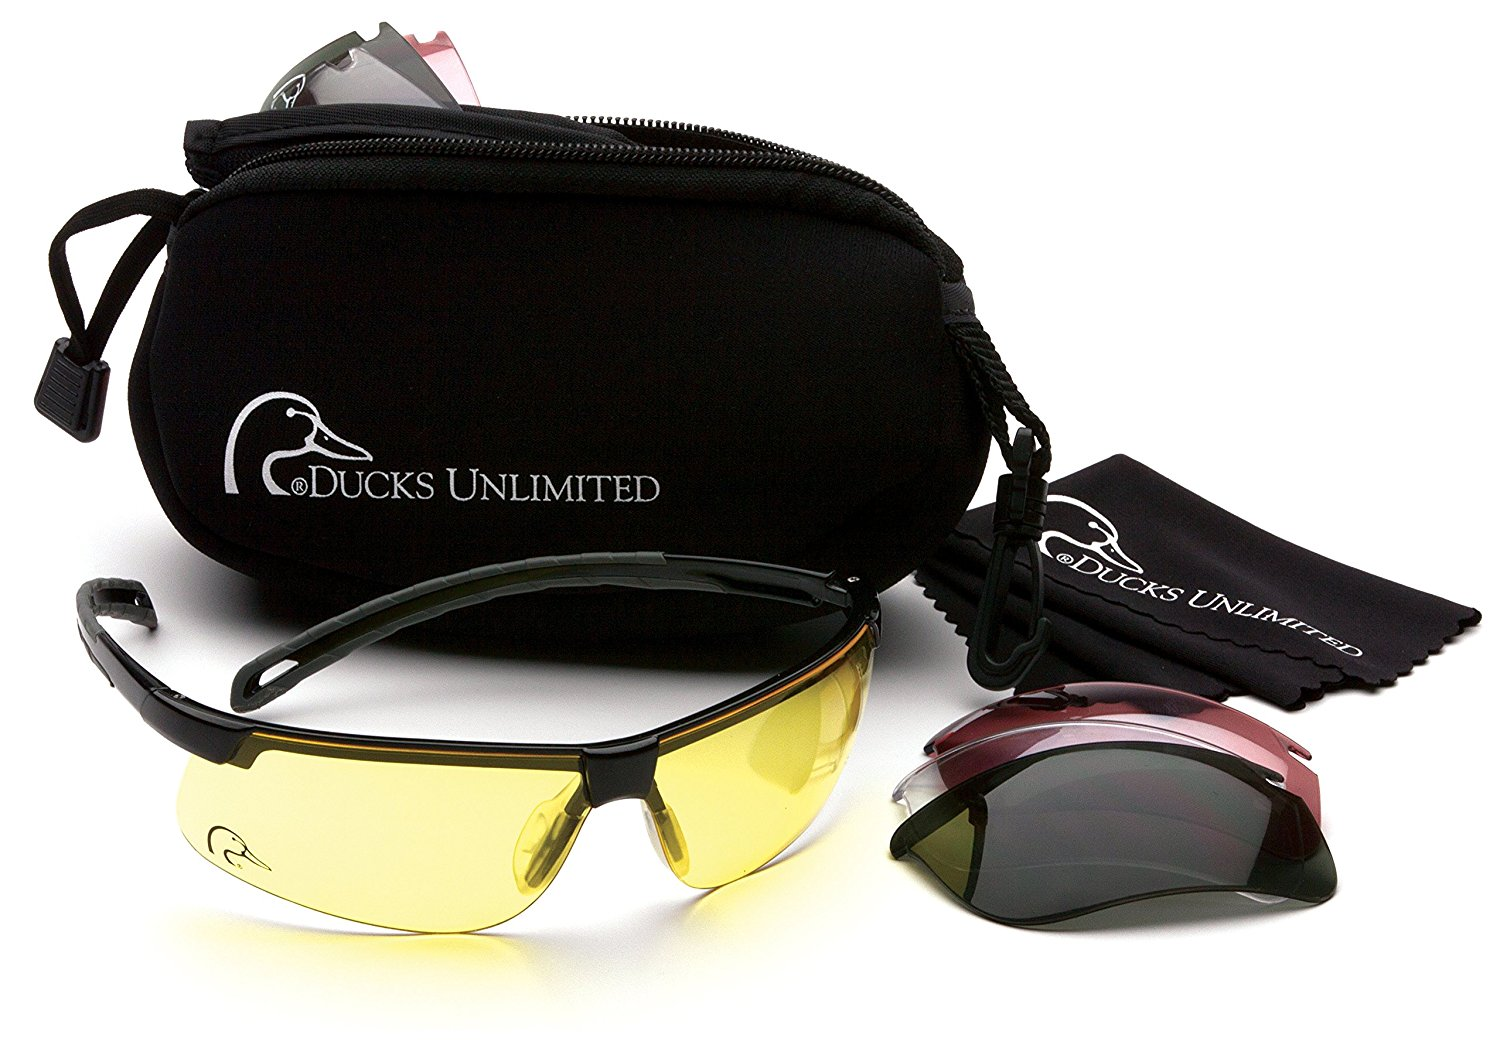 Ducks Unlimited Shooting Glasses Kit